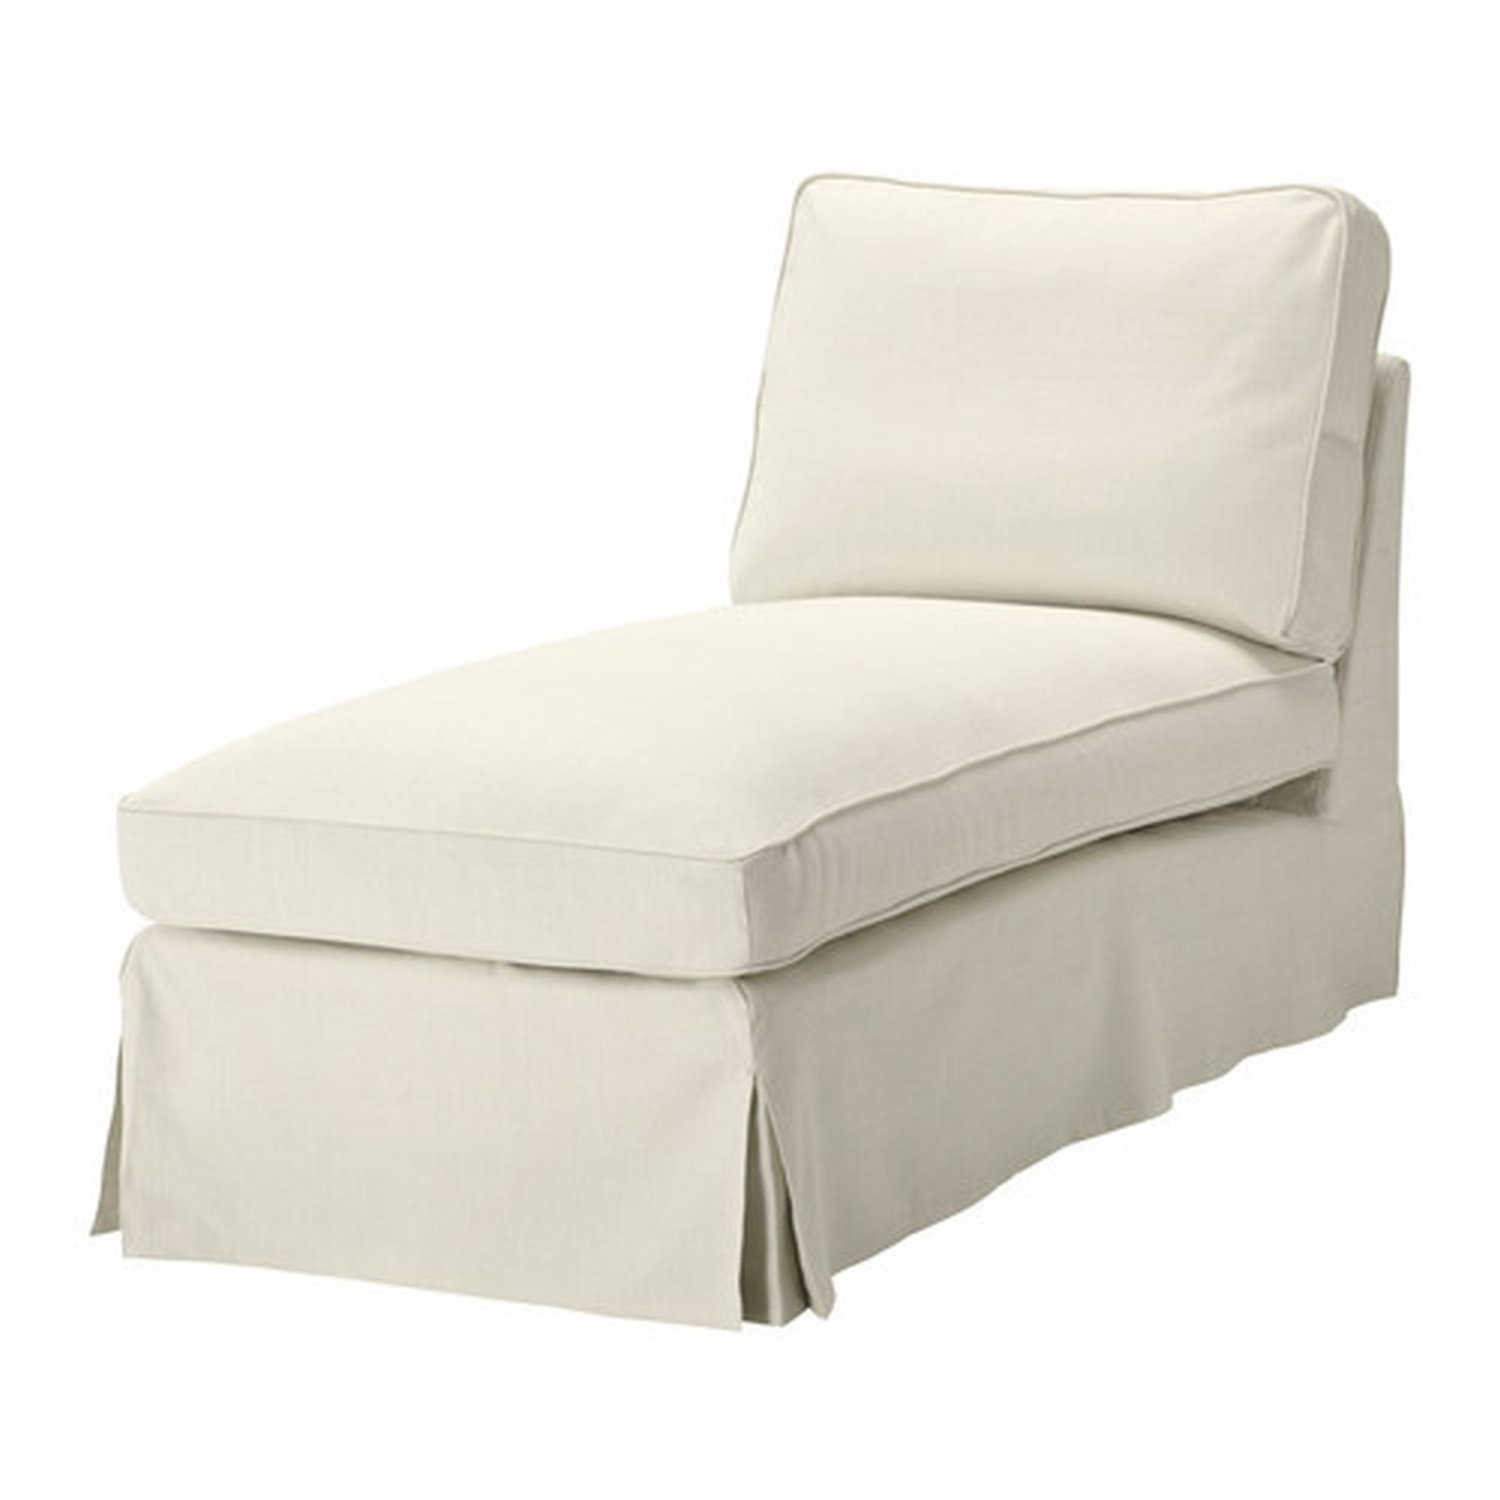 Ikea ektorp free standing chaise longue cover slipcover for Chaise longue lounge